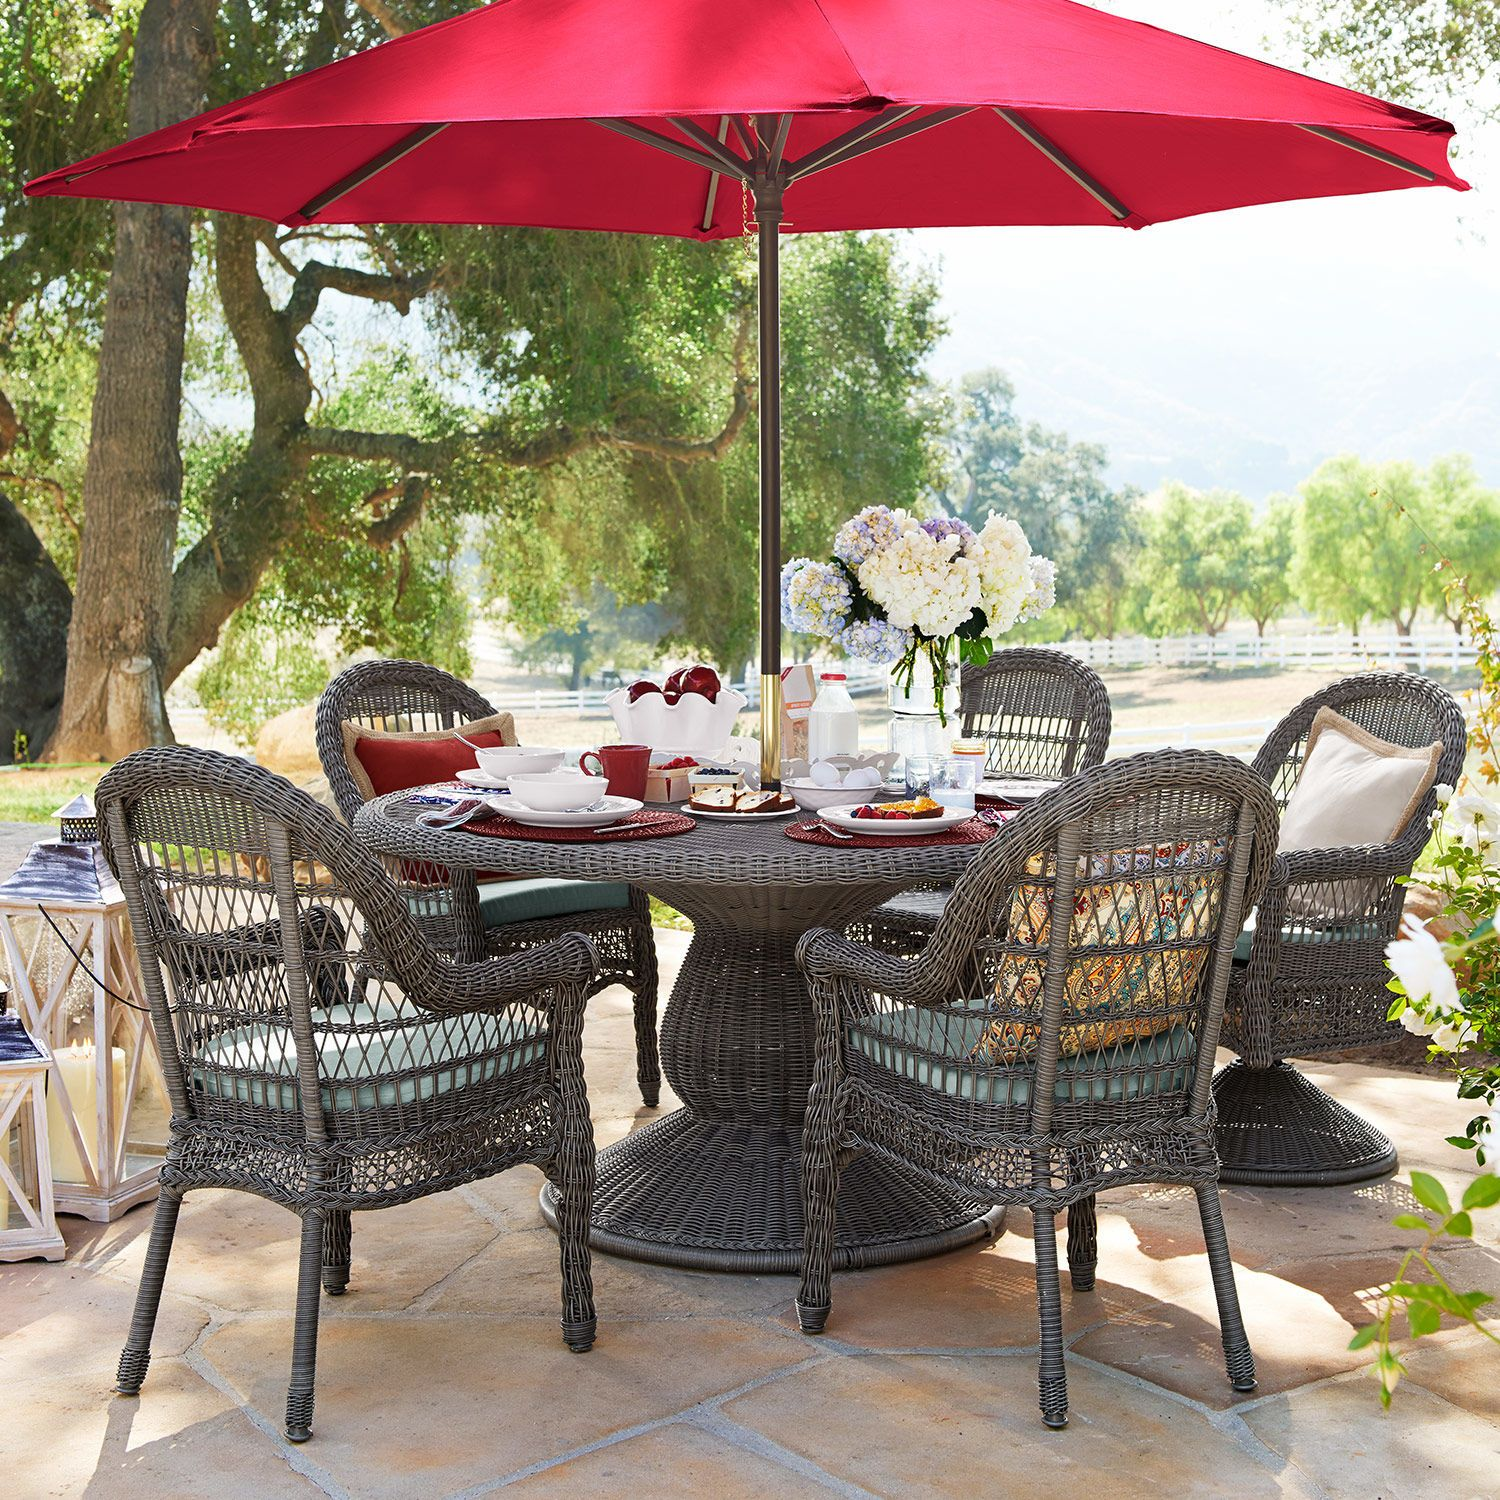 Hand Woven Of Easy To Clean Synthetic Wicker Over A Sturdy, Rust Resistant  Iron Frame, It Can Be Used Alone Or With Your Patio Umbrella And Stand.